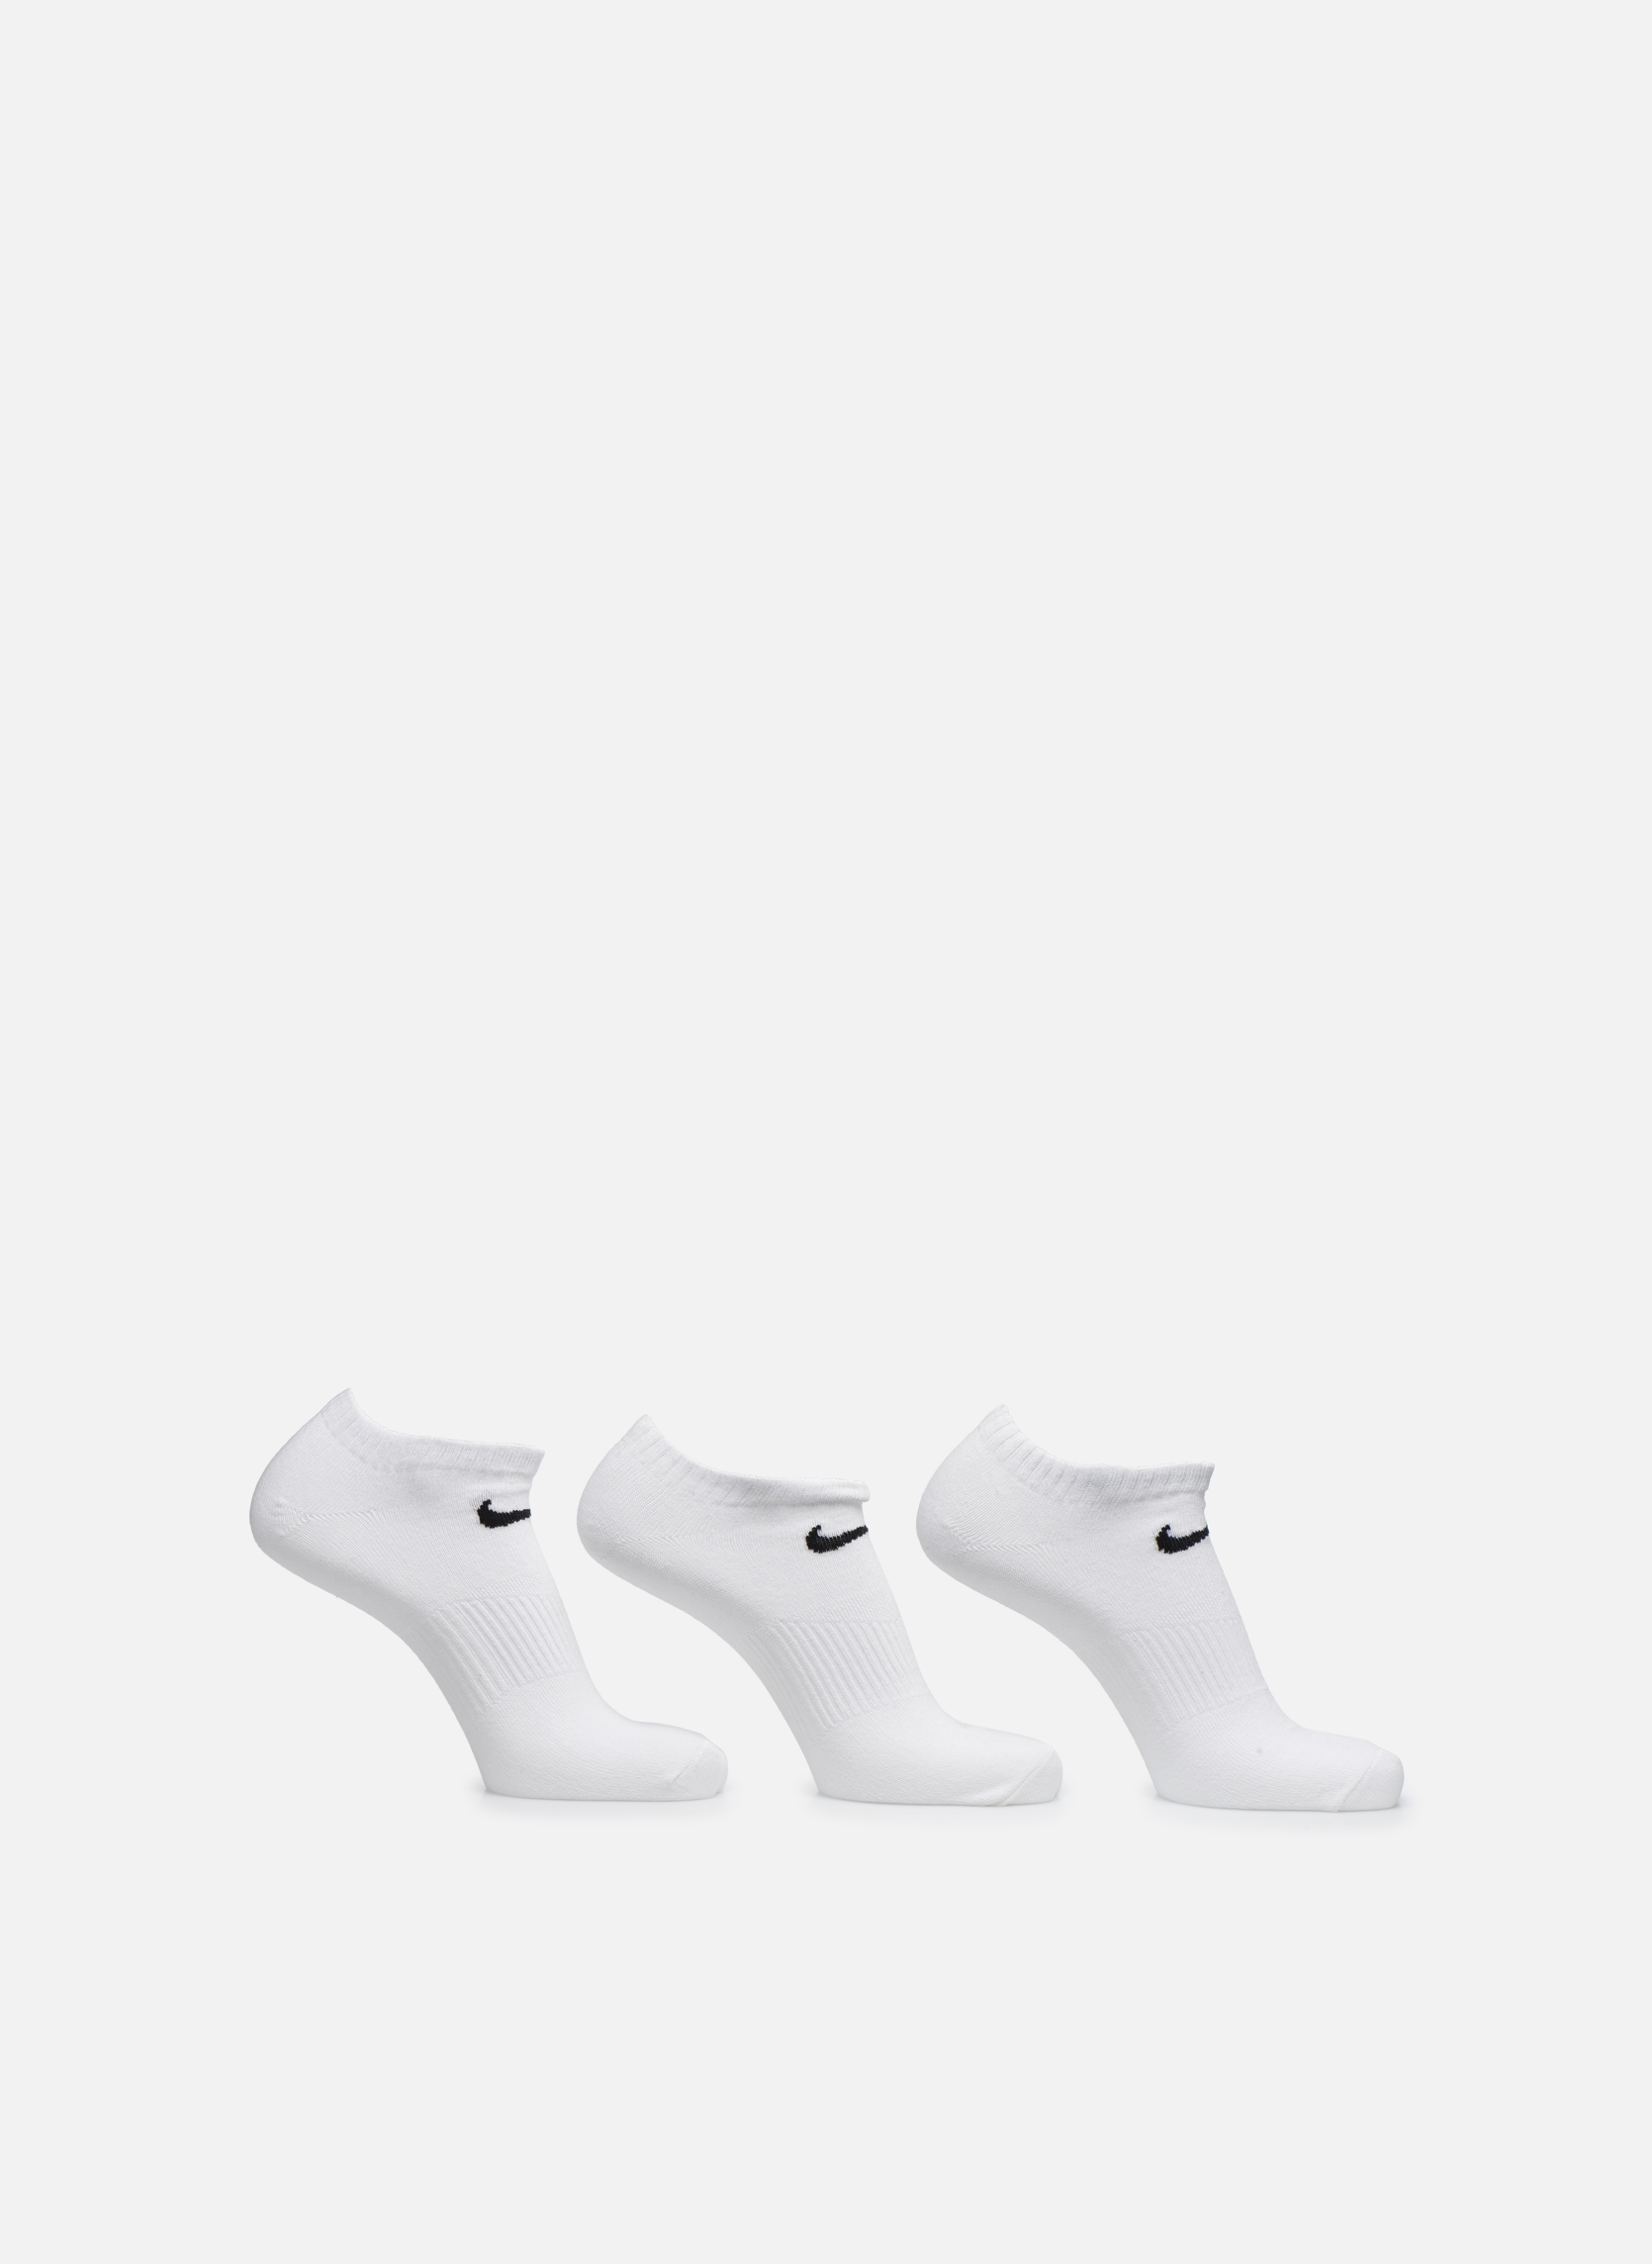 Socks & tights Accessories (3 pack) Nike Invisible socks